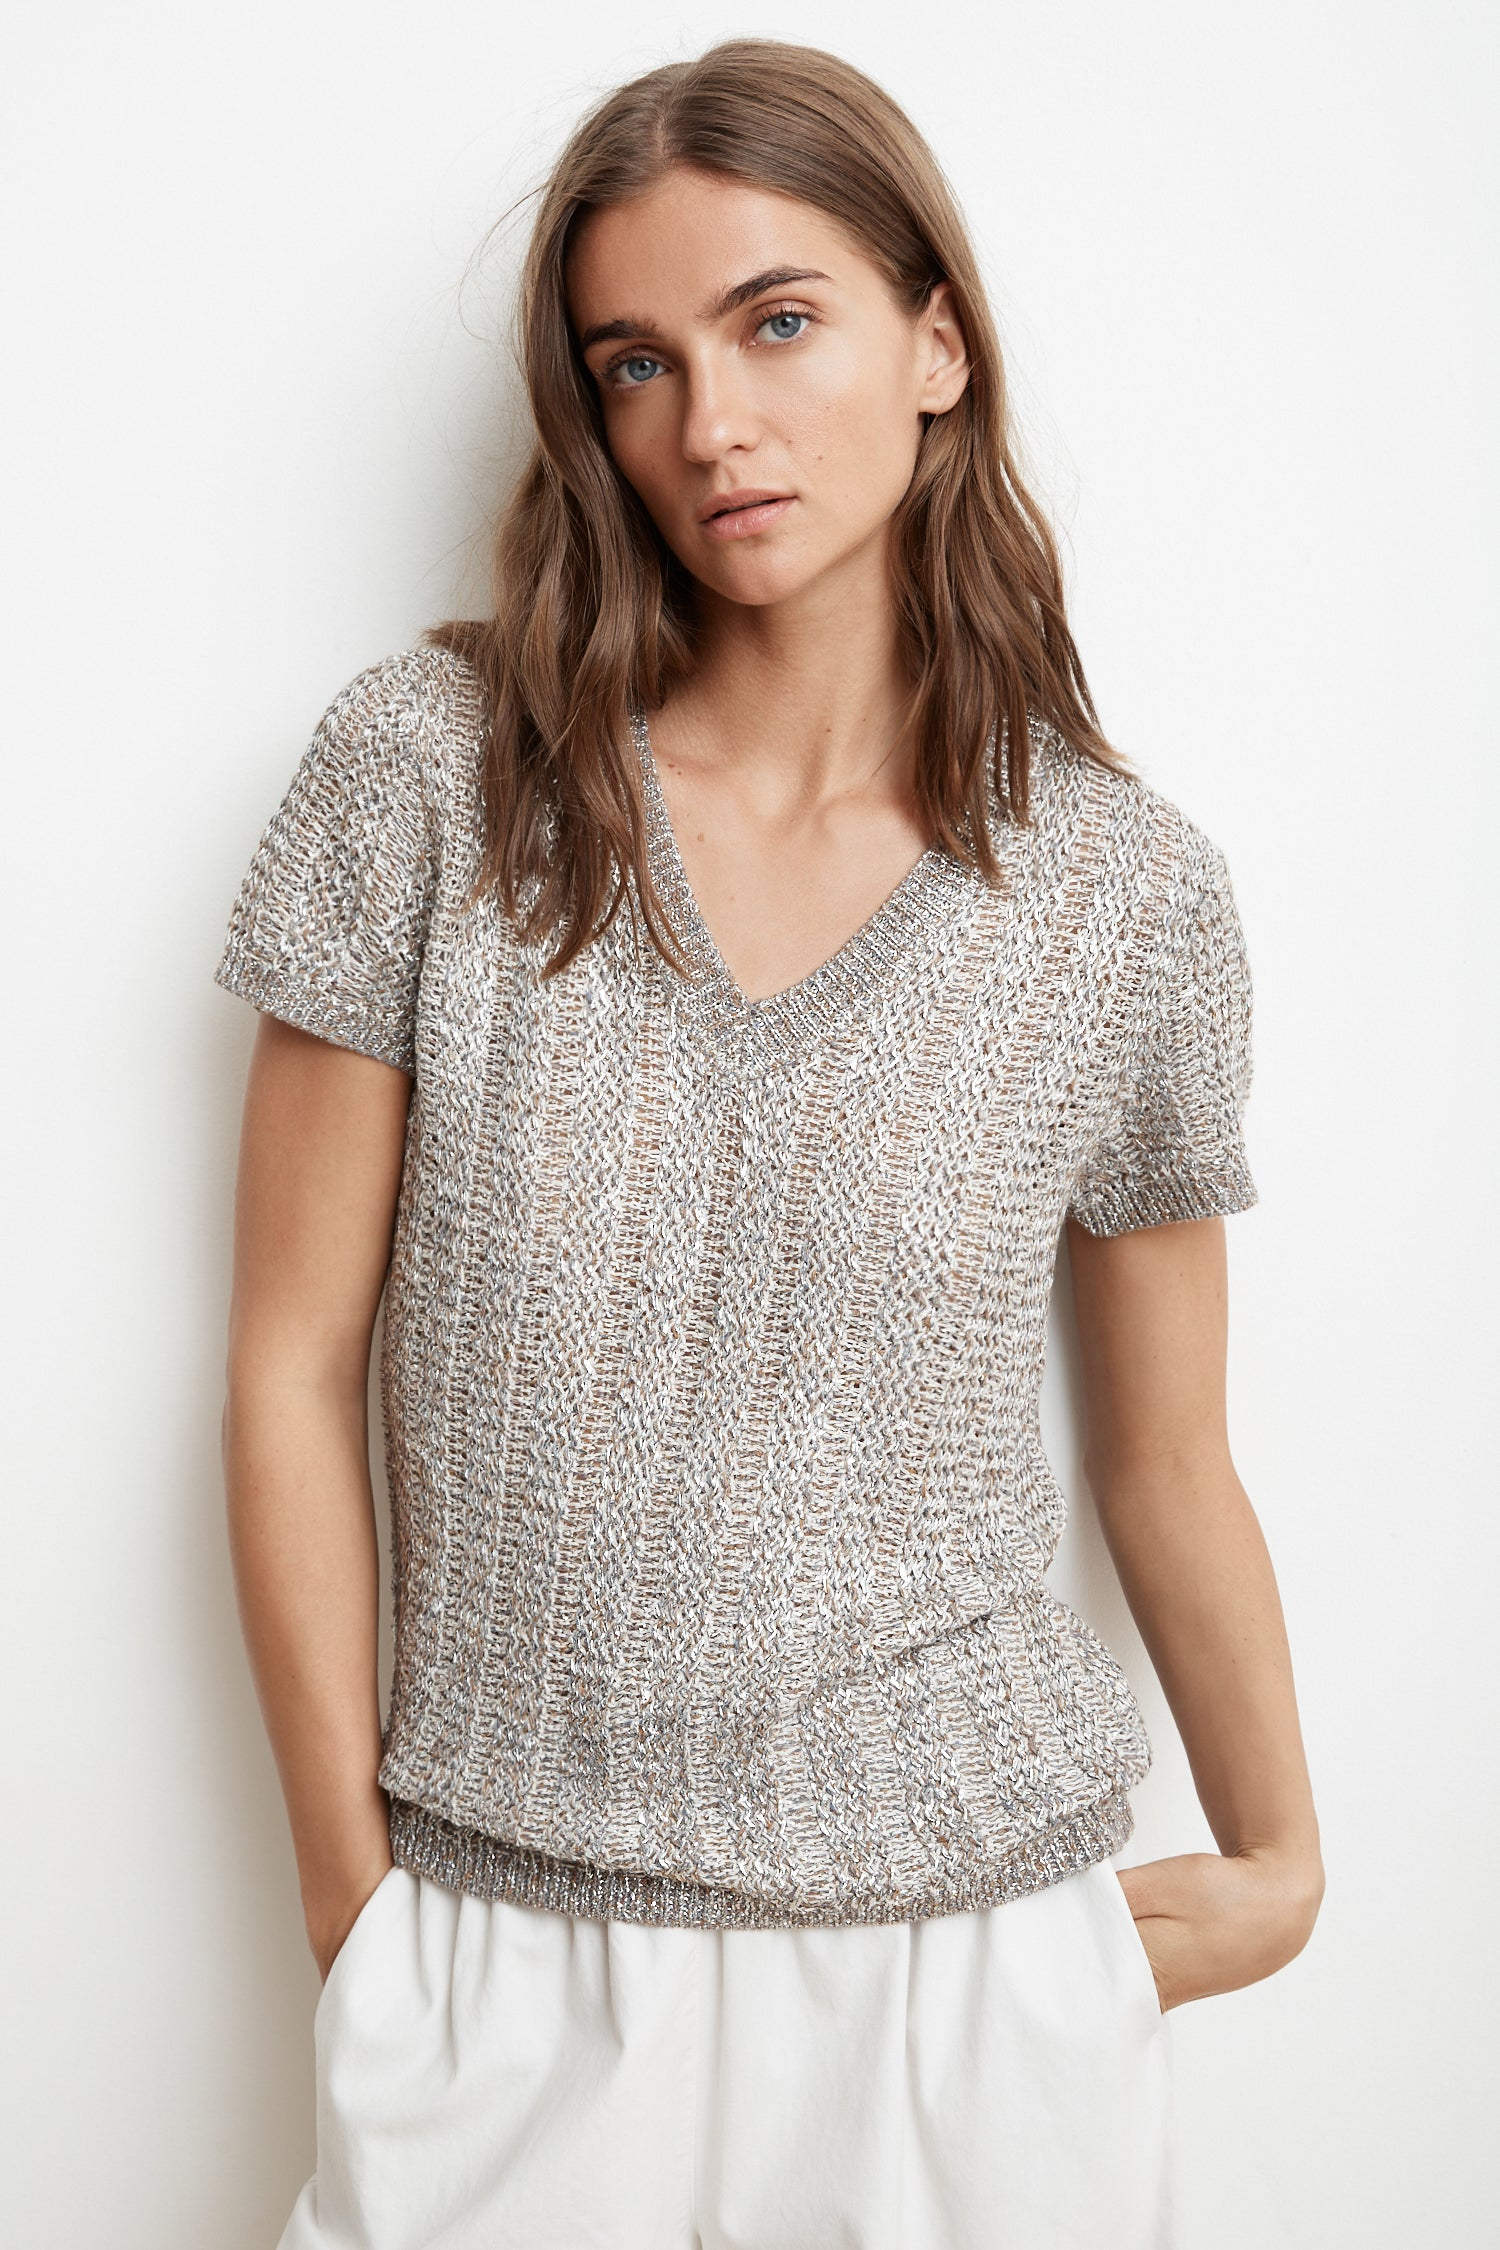 BOBBI METALLIC KNIT SHORT SLEEVE TOP IN MULTI